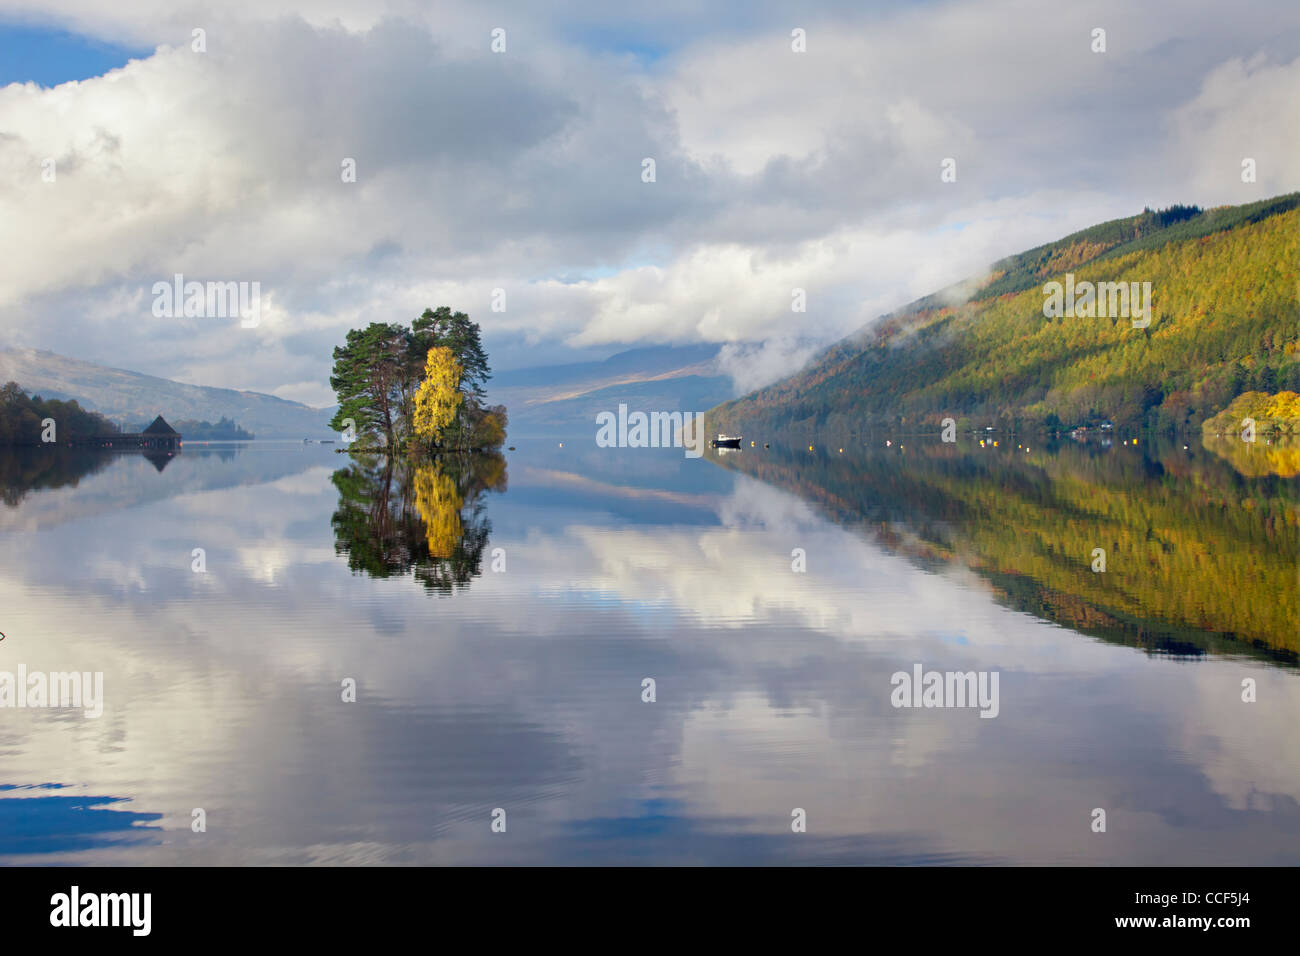 Loch Tay near Kenmore in Perthshire, Scotland captured in October - Stock Image